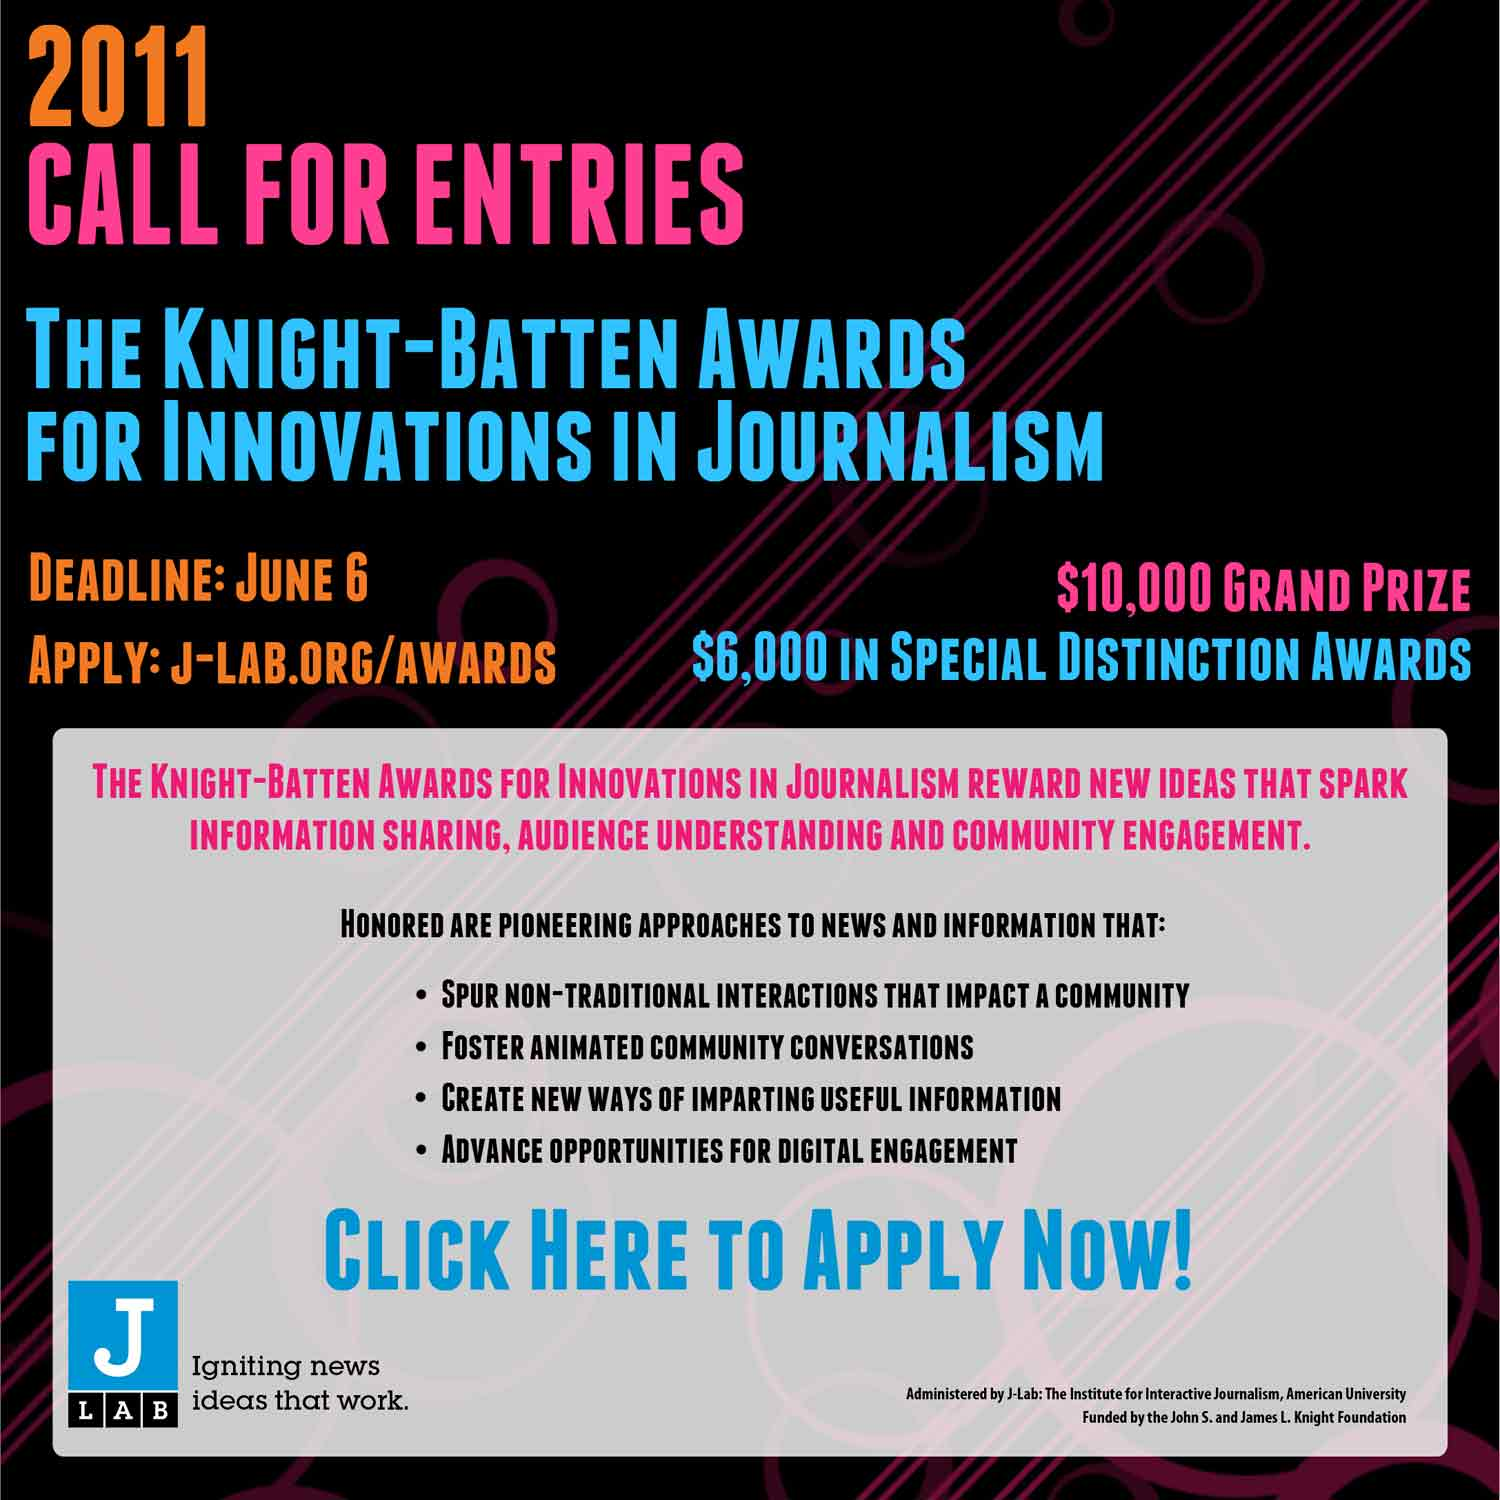 Apply now for the Knight-Batten Awards for Innovations in Journalism. $10,000 Grand Prize!